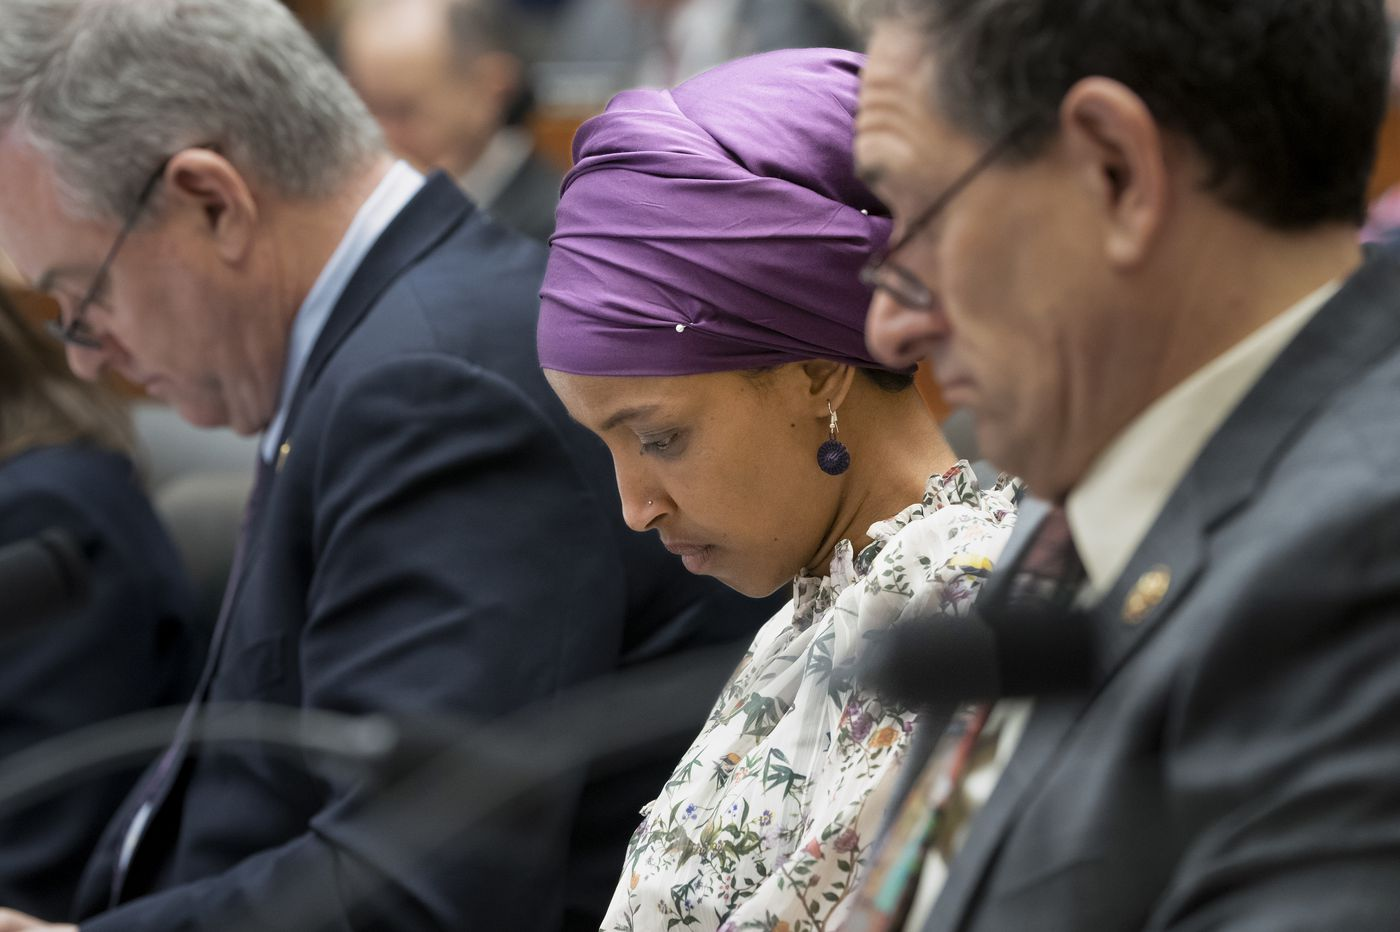 Democrats split over resolution condemning anti-Semitism aimed at newcomer Ilhan Omar